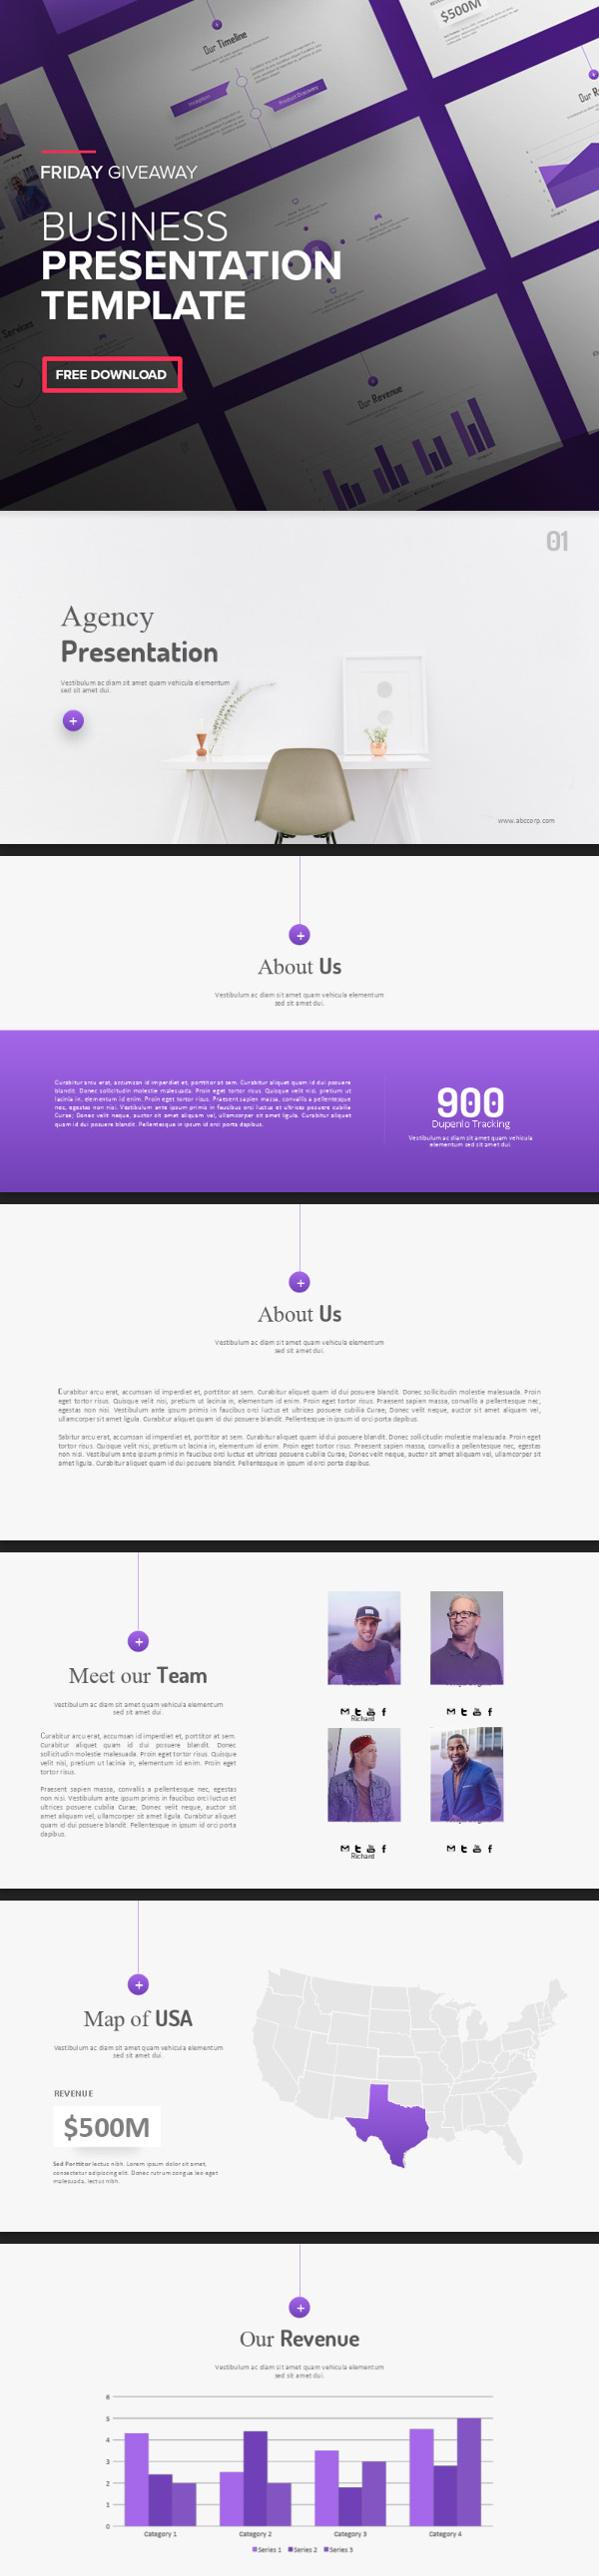 Freebies for 2019: Free Presentation Template